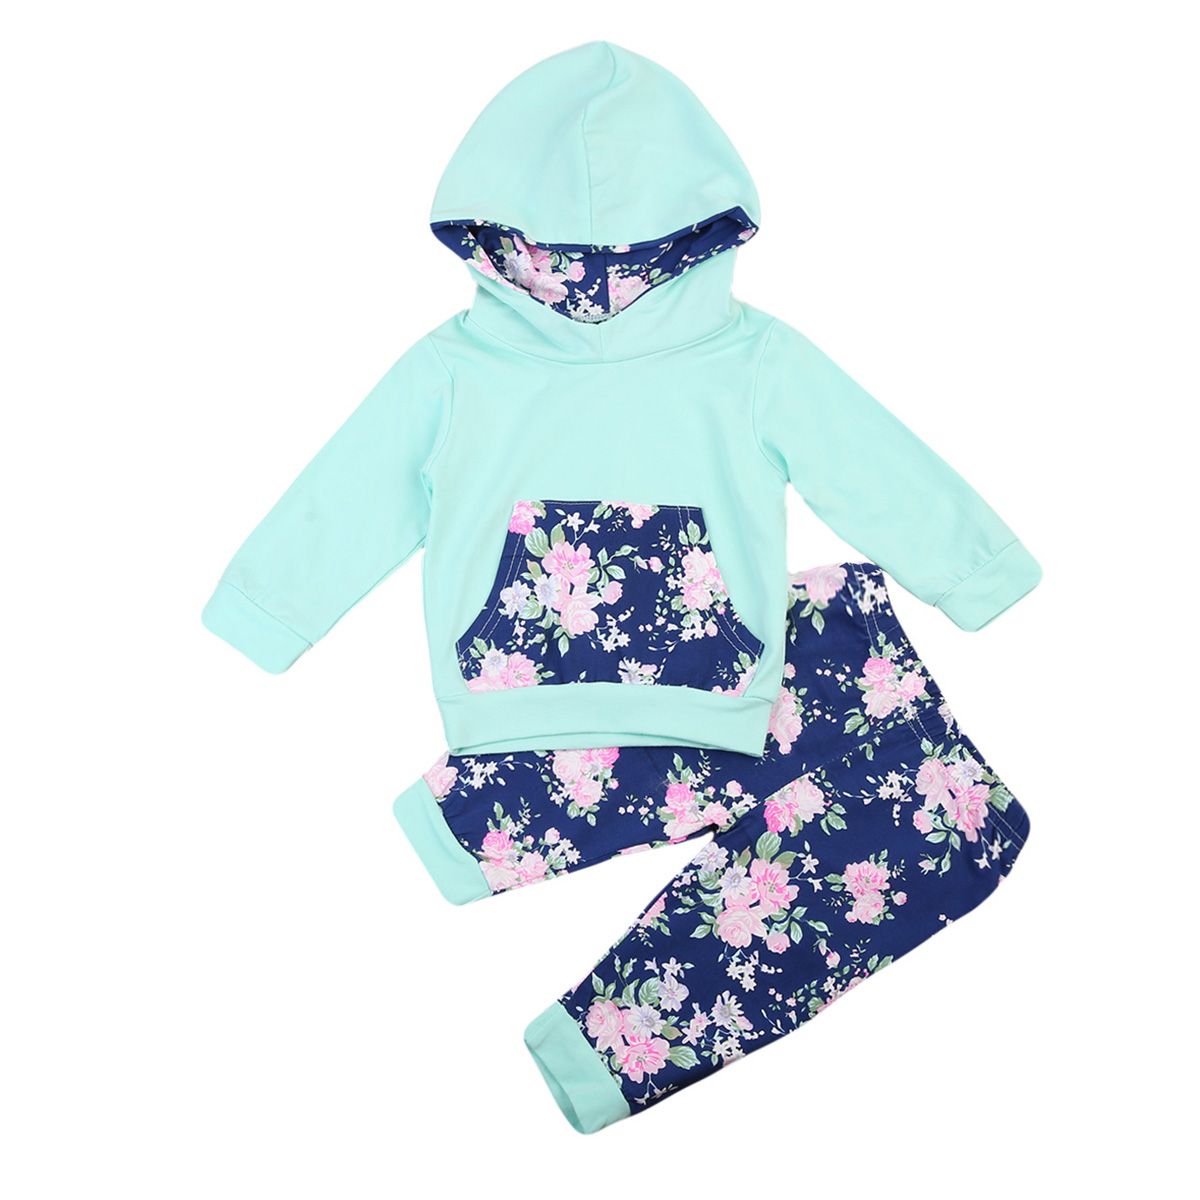 Newborn Baby Girls Winter Outfits Clothes Hoodie Tops+Pants Leggings Outfits Set